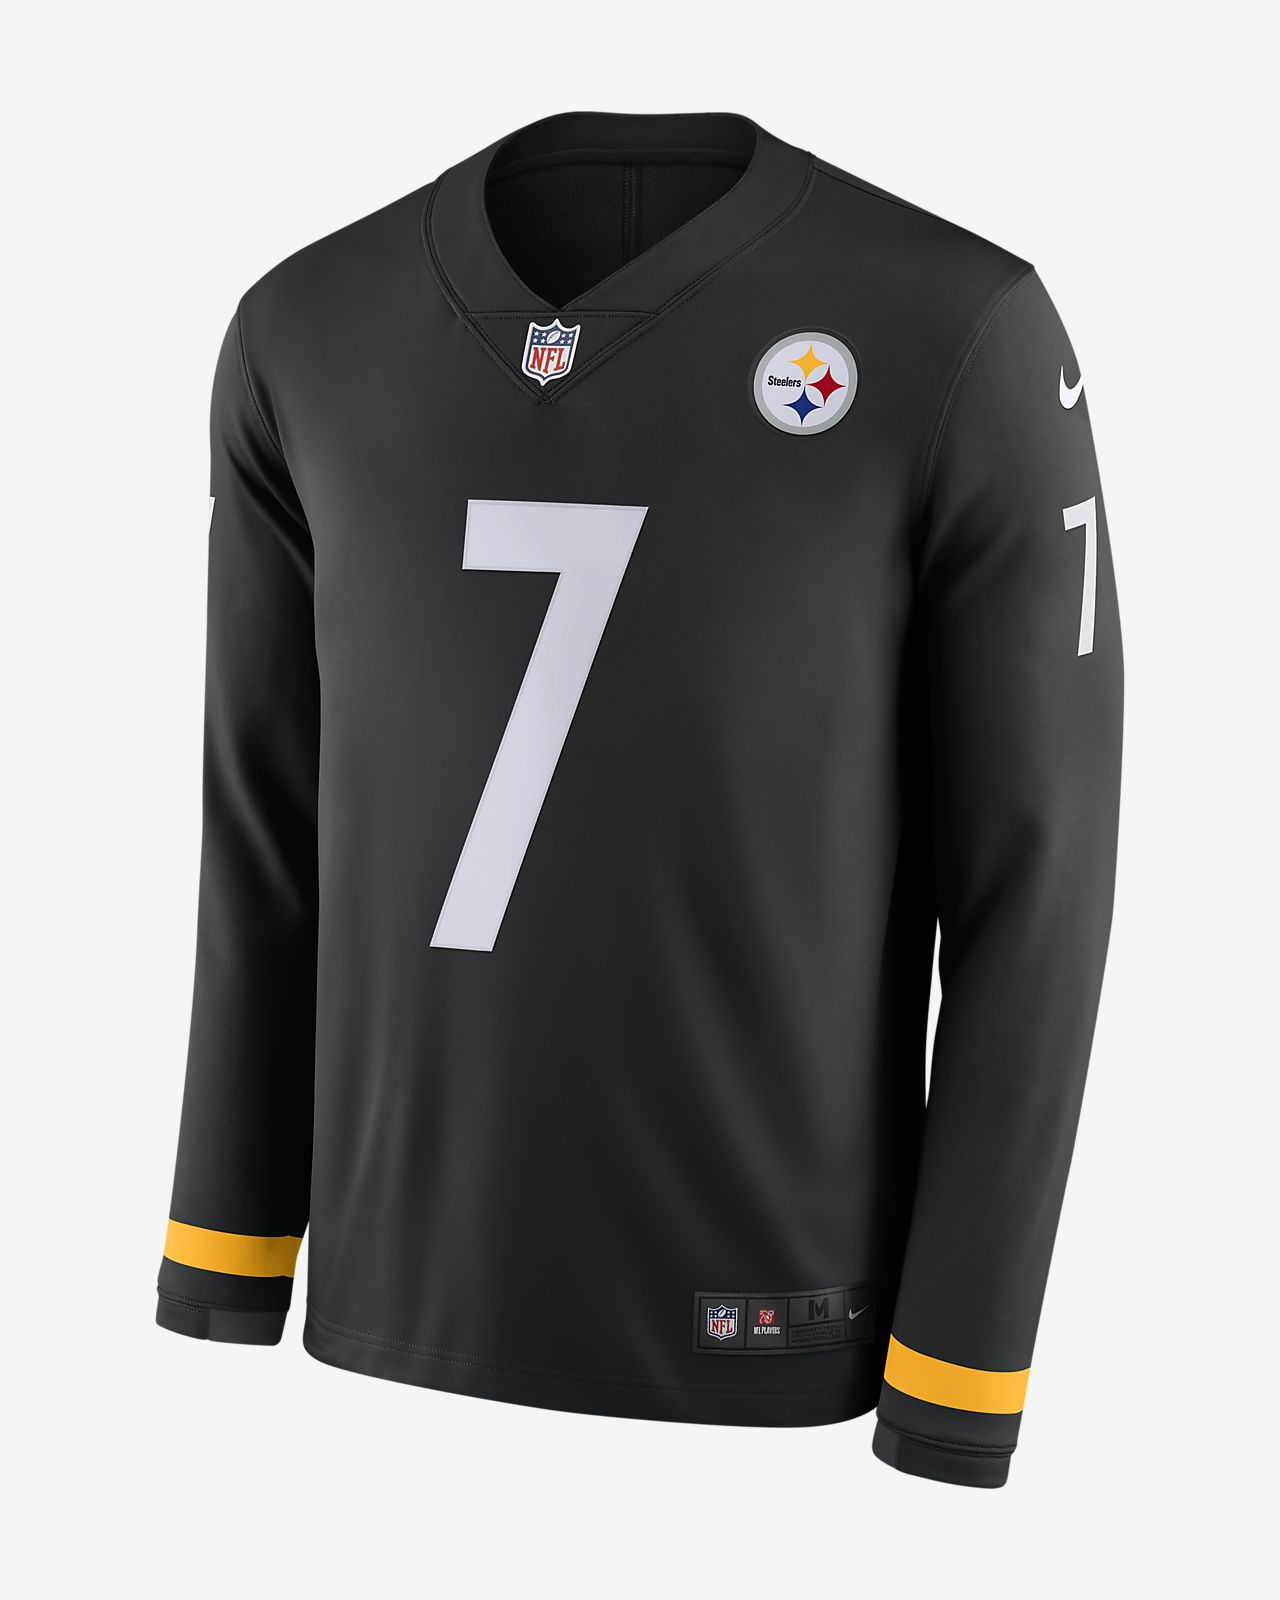 low priced 2e235 eb0c2 Nike NFL jerseys